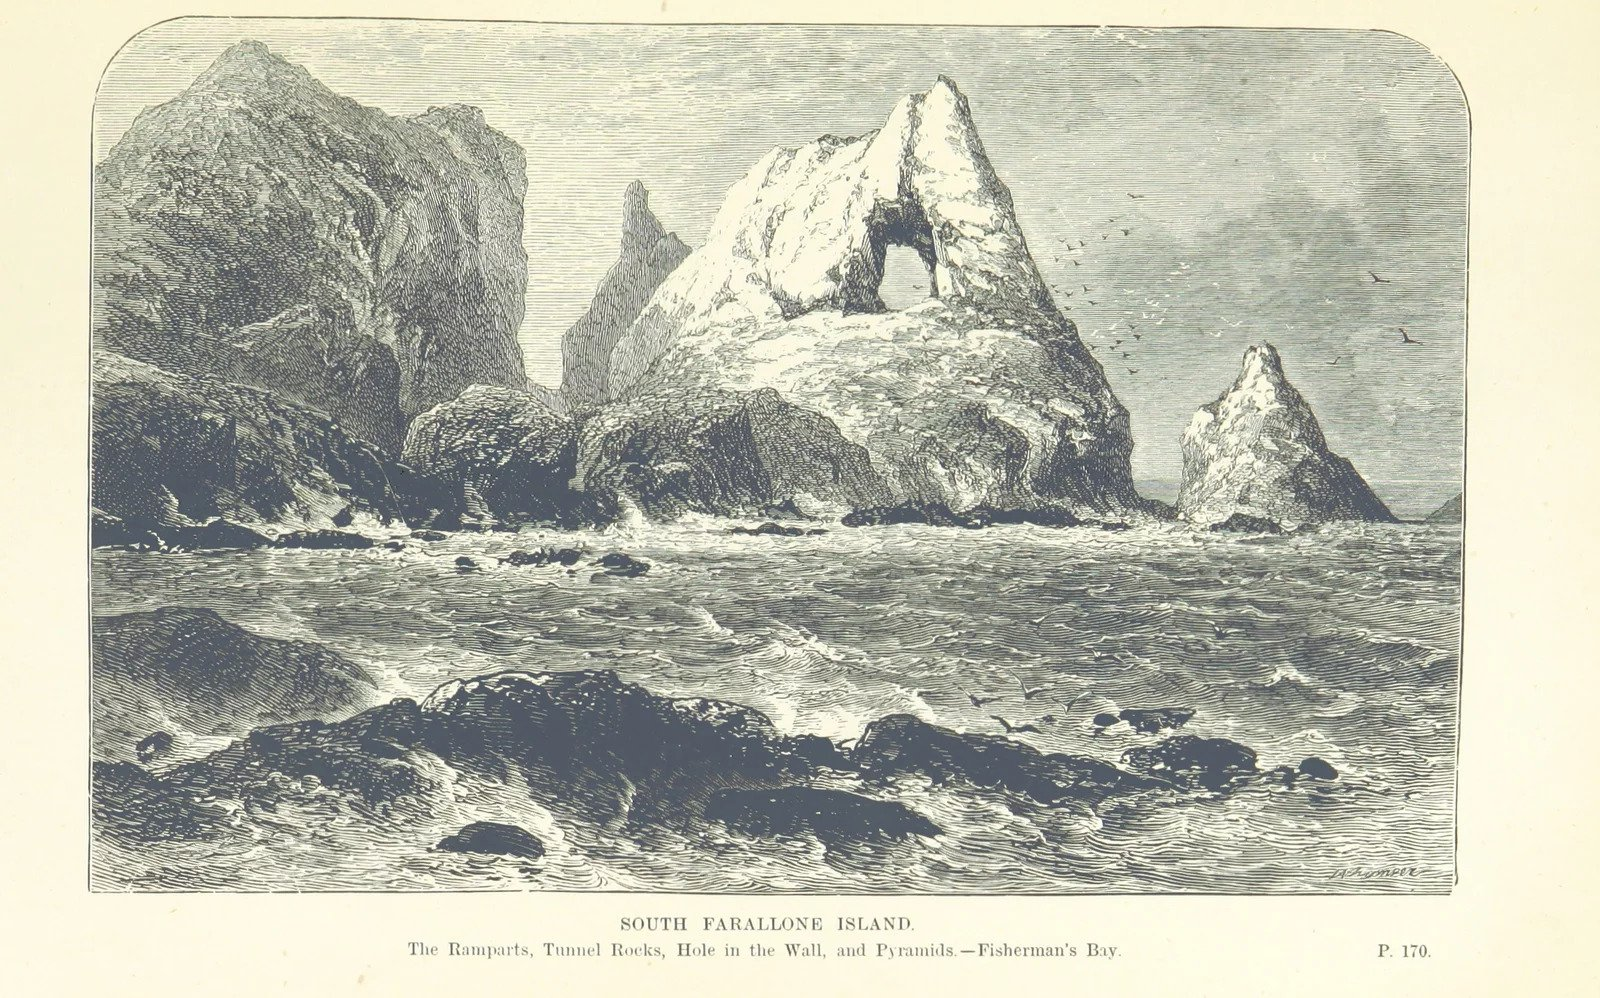 Etching of The South Farallon Island